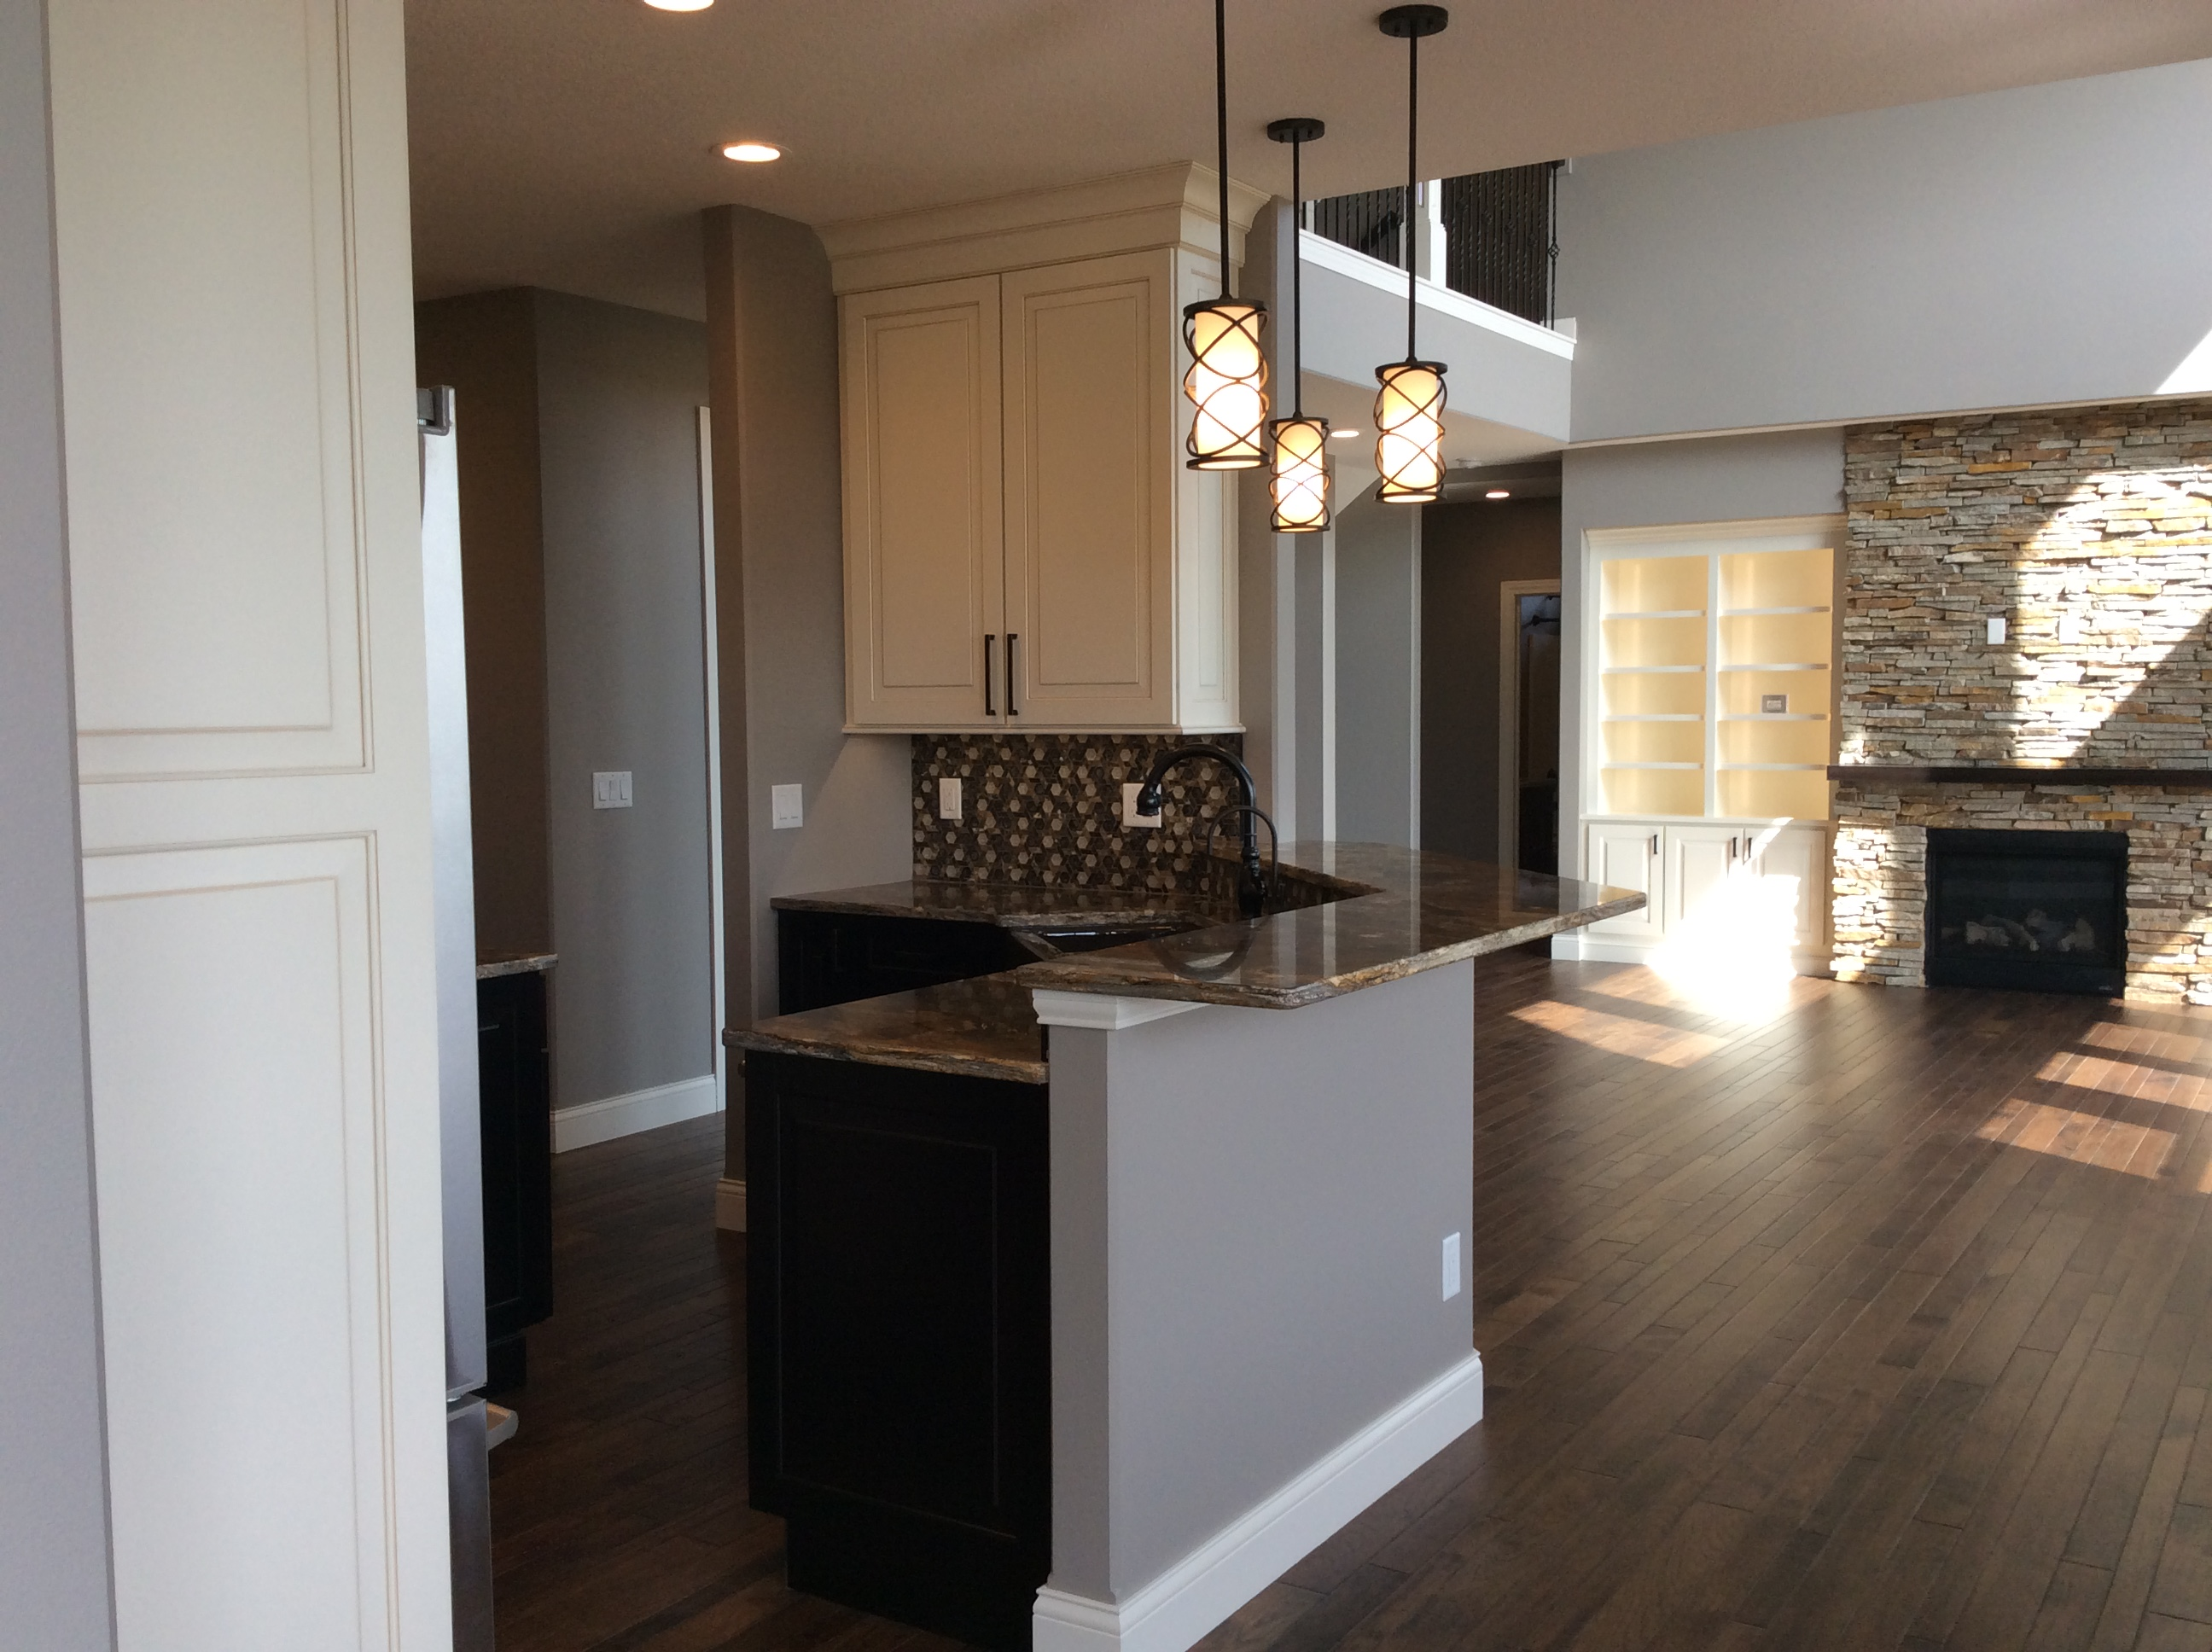 Merveilleux Kitchen And Wet Bar Cabinets U2013 Shueyville Parade Home